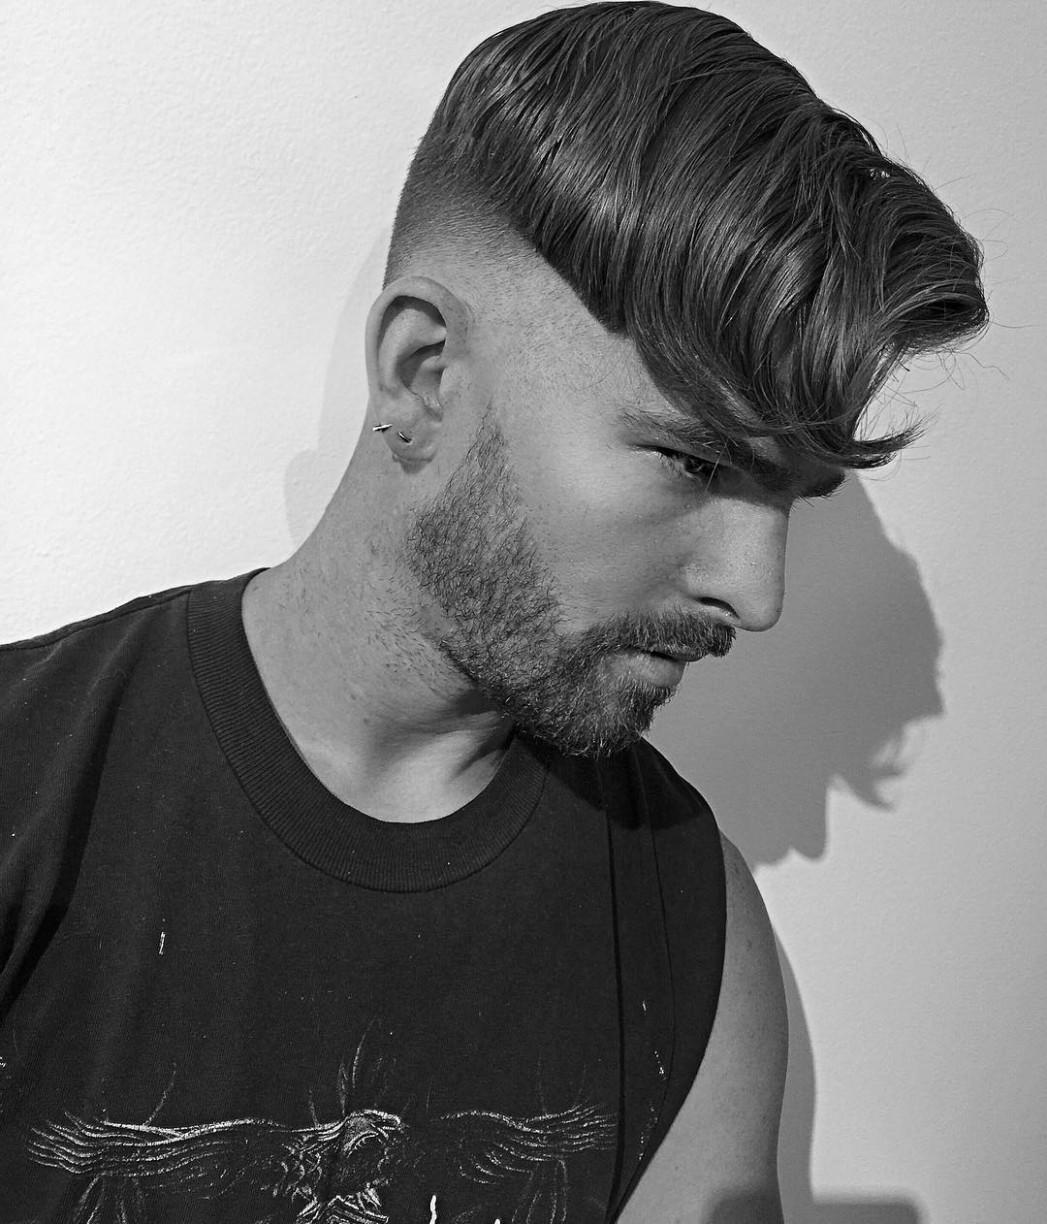 The Undercut Haircut -> 11 Hairstyles That Are Modern + Cool